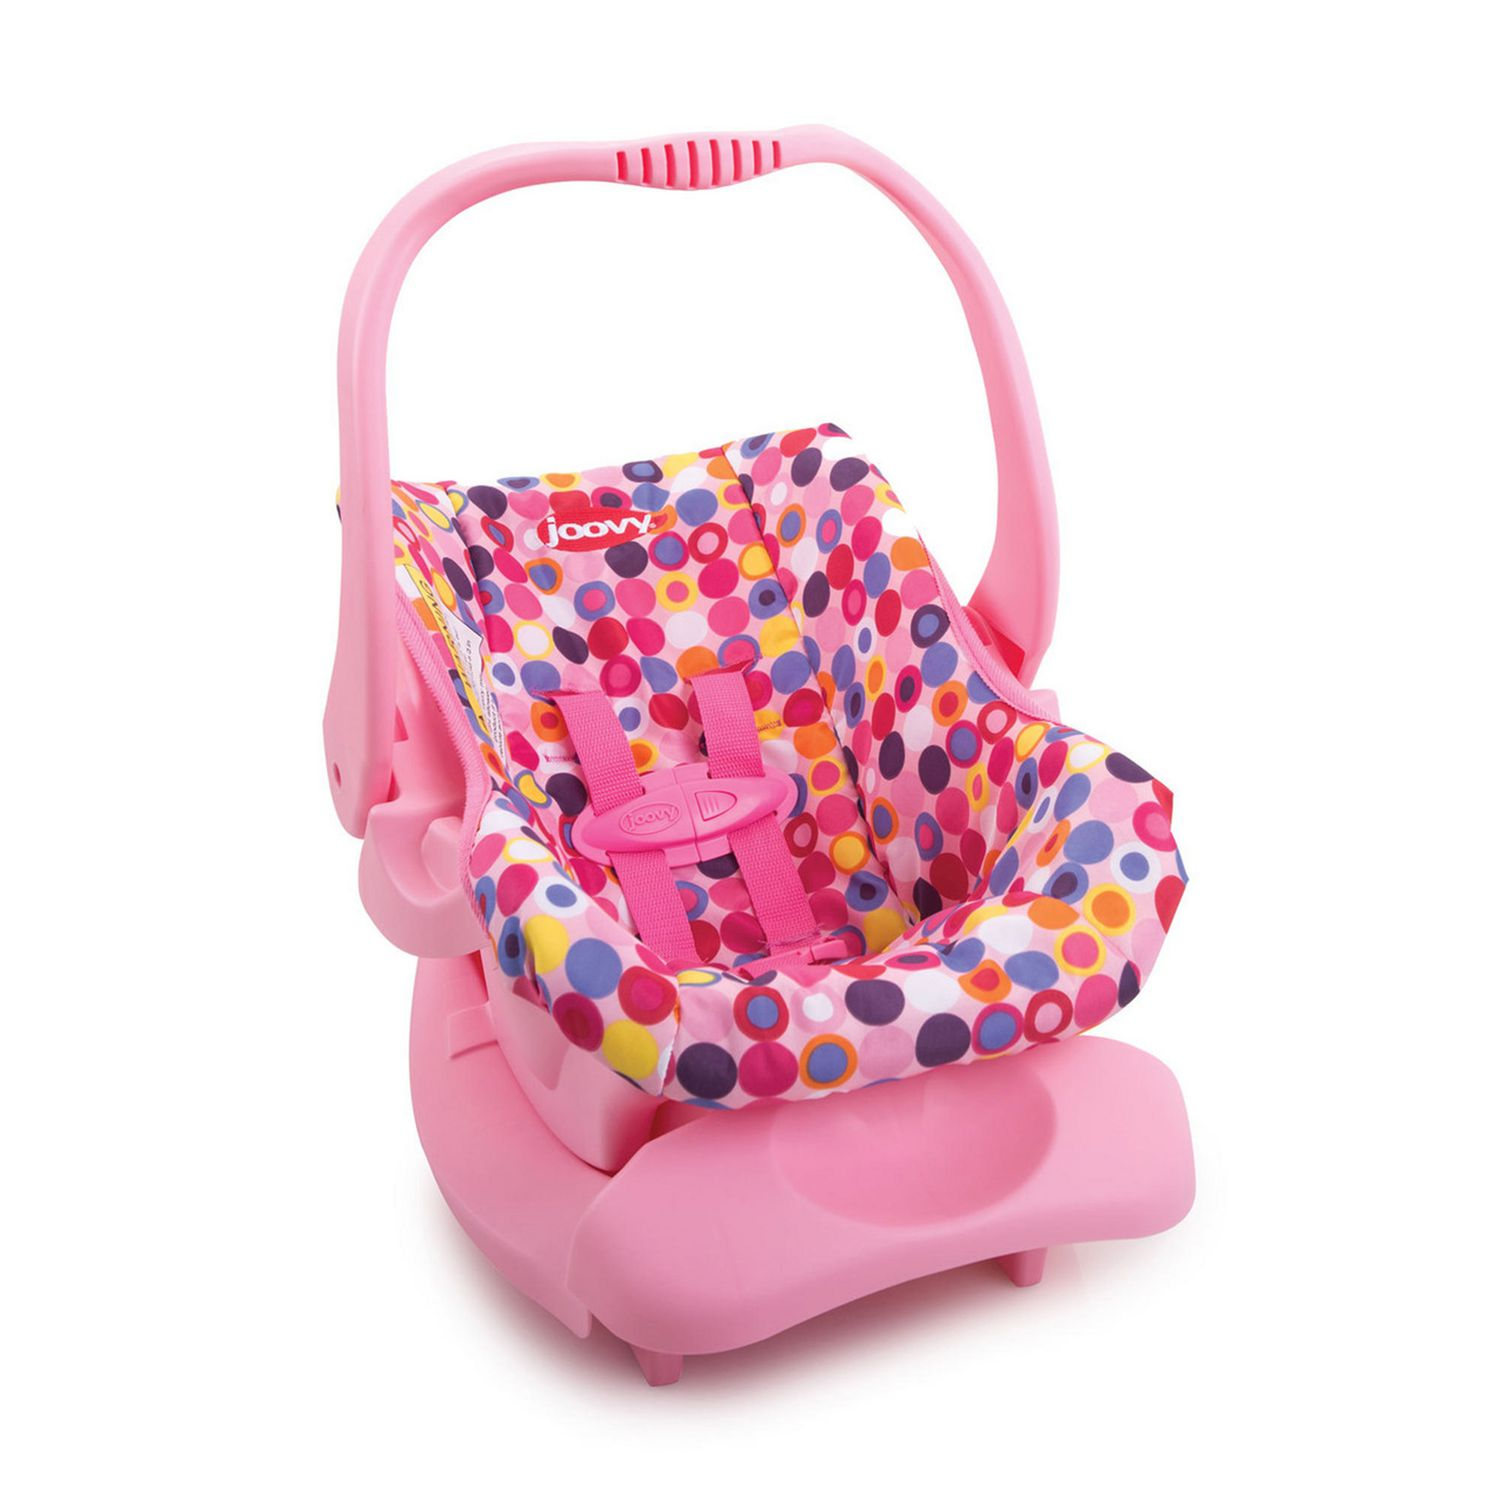 Joovy Toy Infant Car Seat - Pink